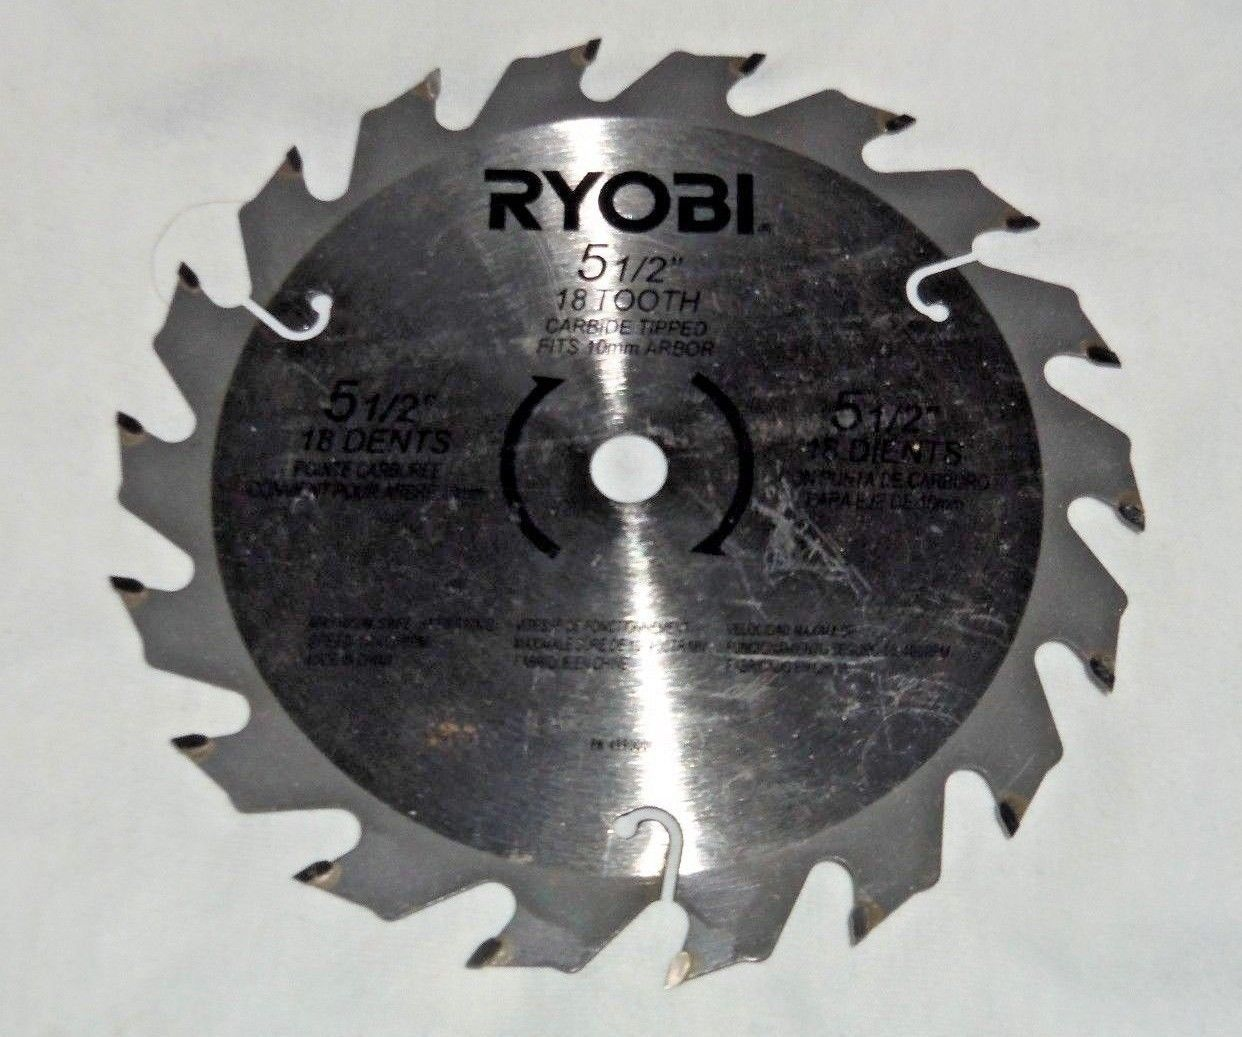 Ryobi 18v 55 carbide tipped circular saw blade pn 4990001 new ryobi 18v 55 carbide tipped circular saw blade pn 4990001 greentooth Image collections